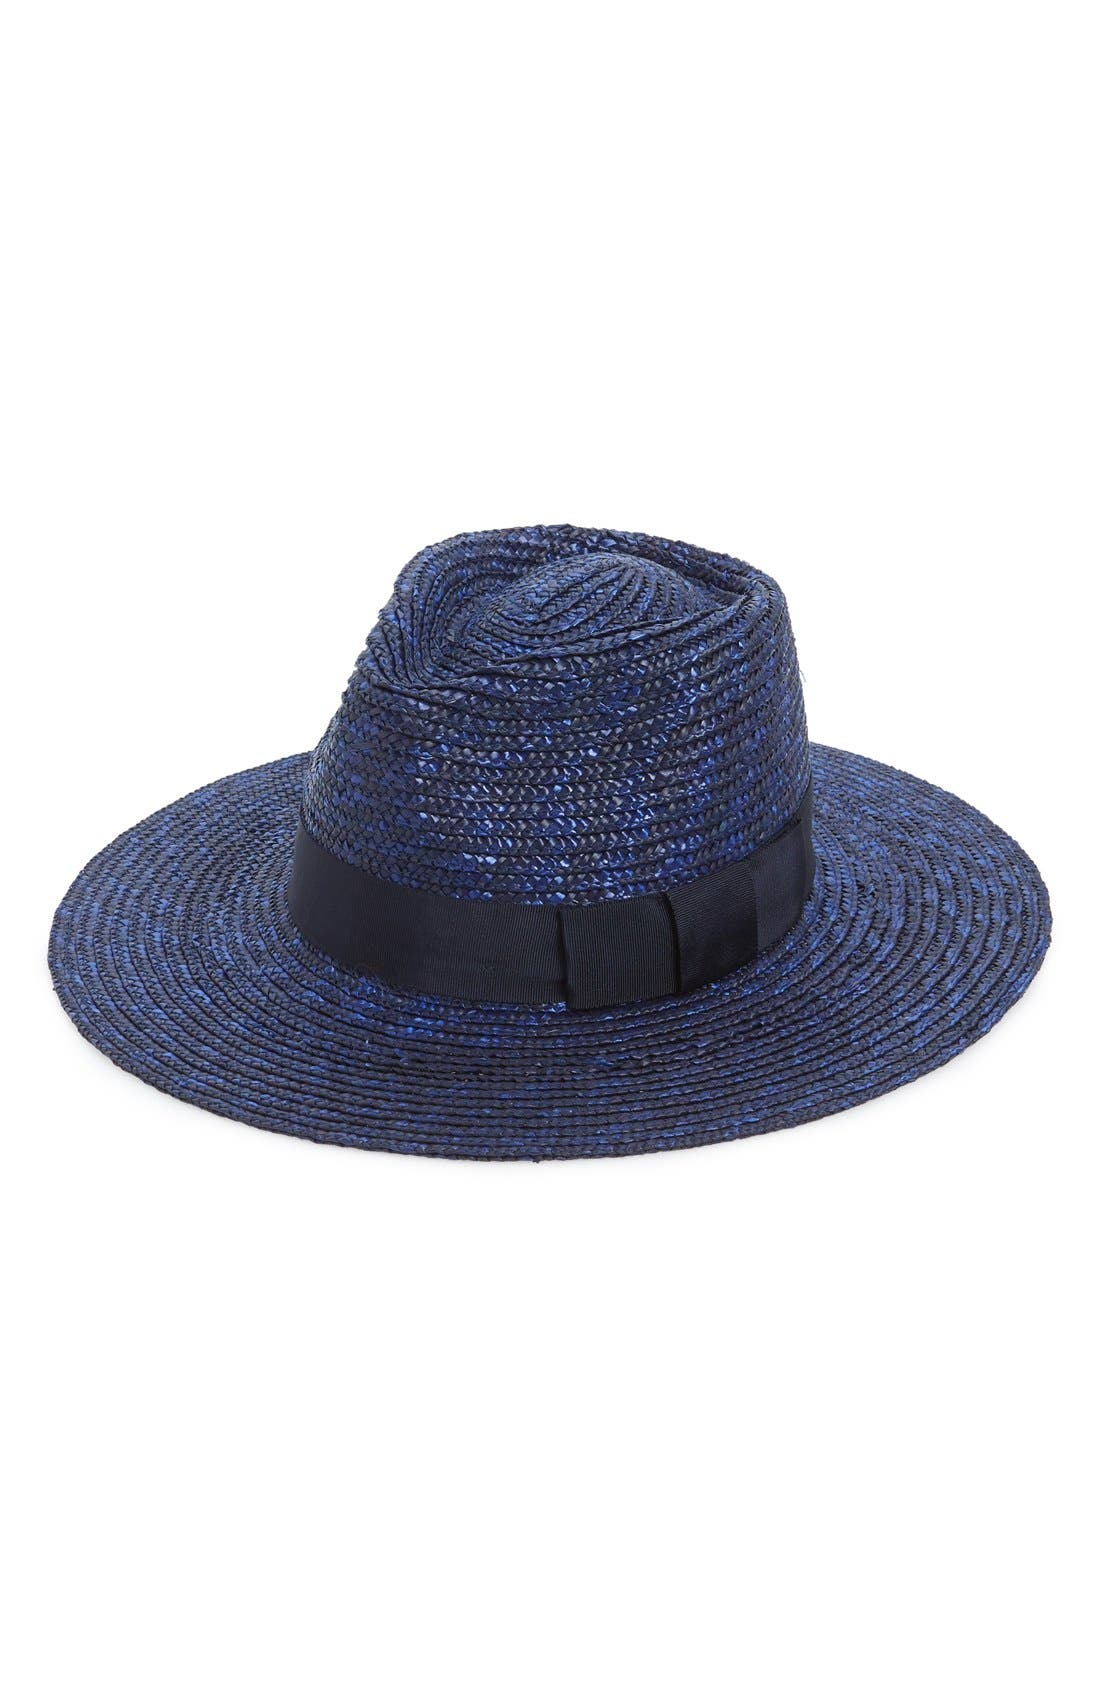 'Joanna' Straw Hat,                         Main,                         color, MIDNIGHT